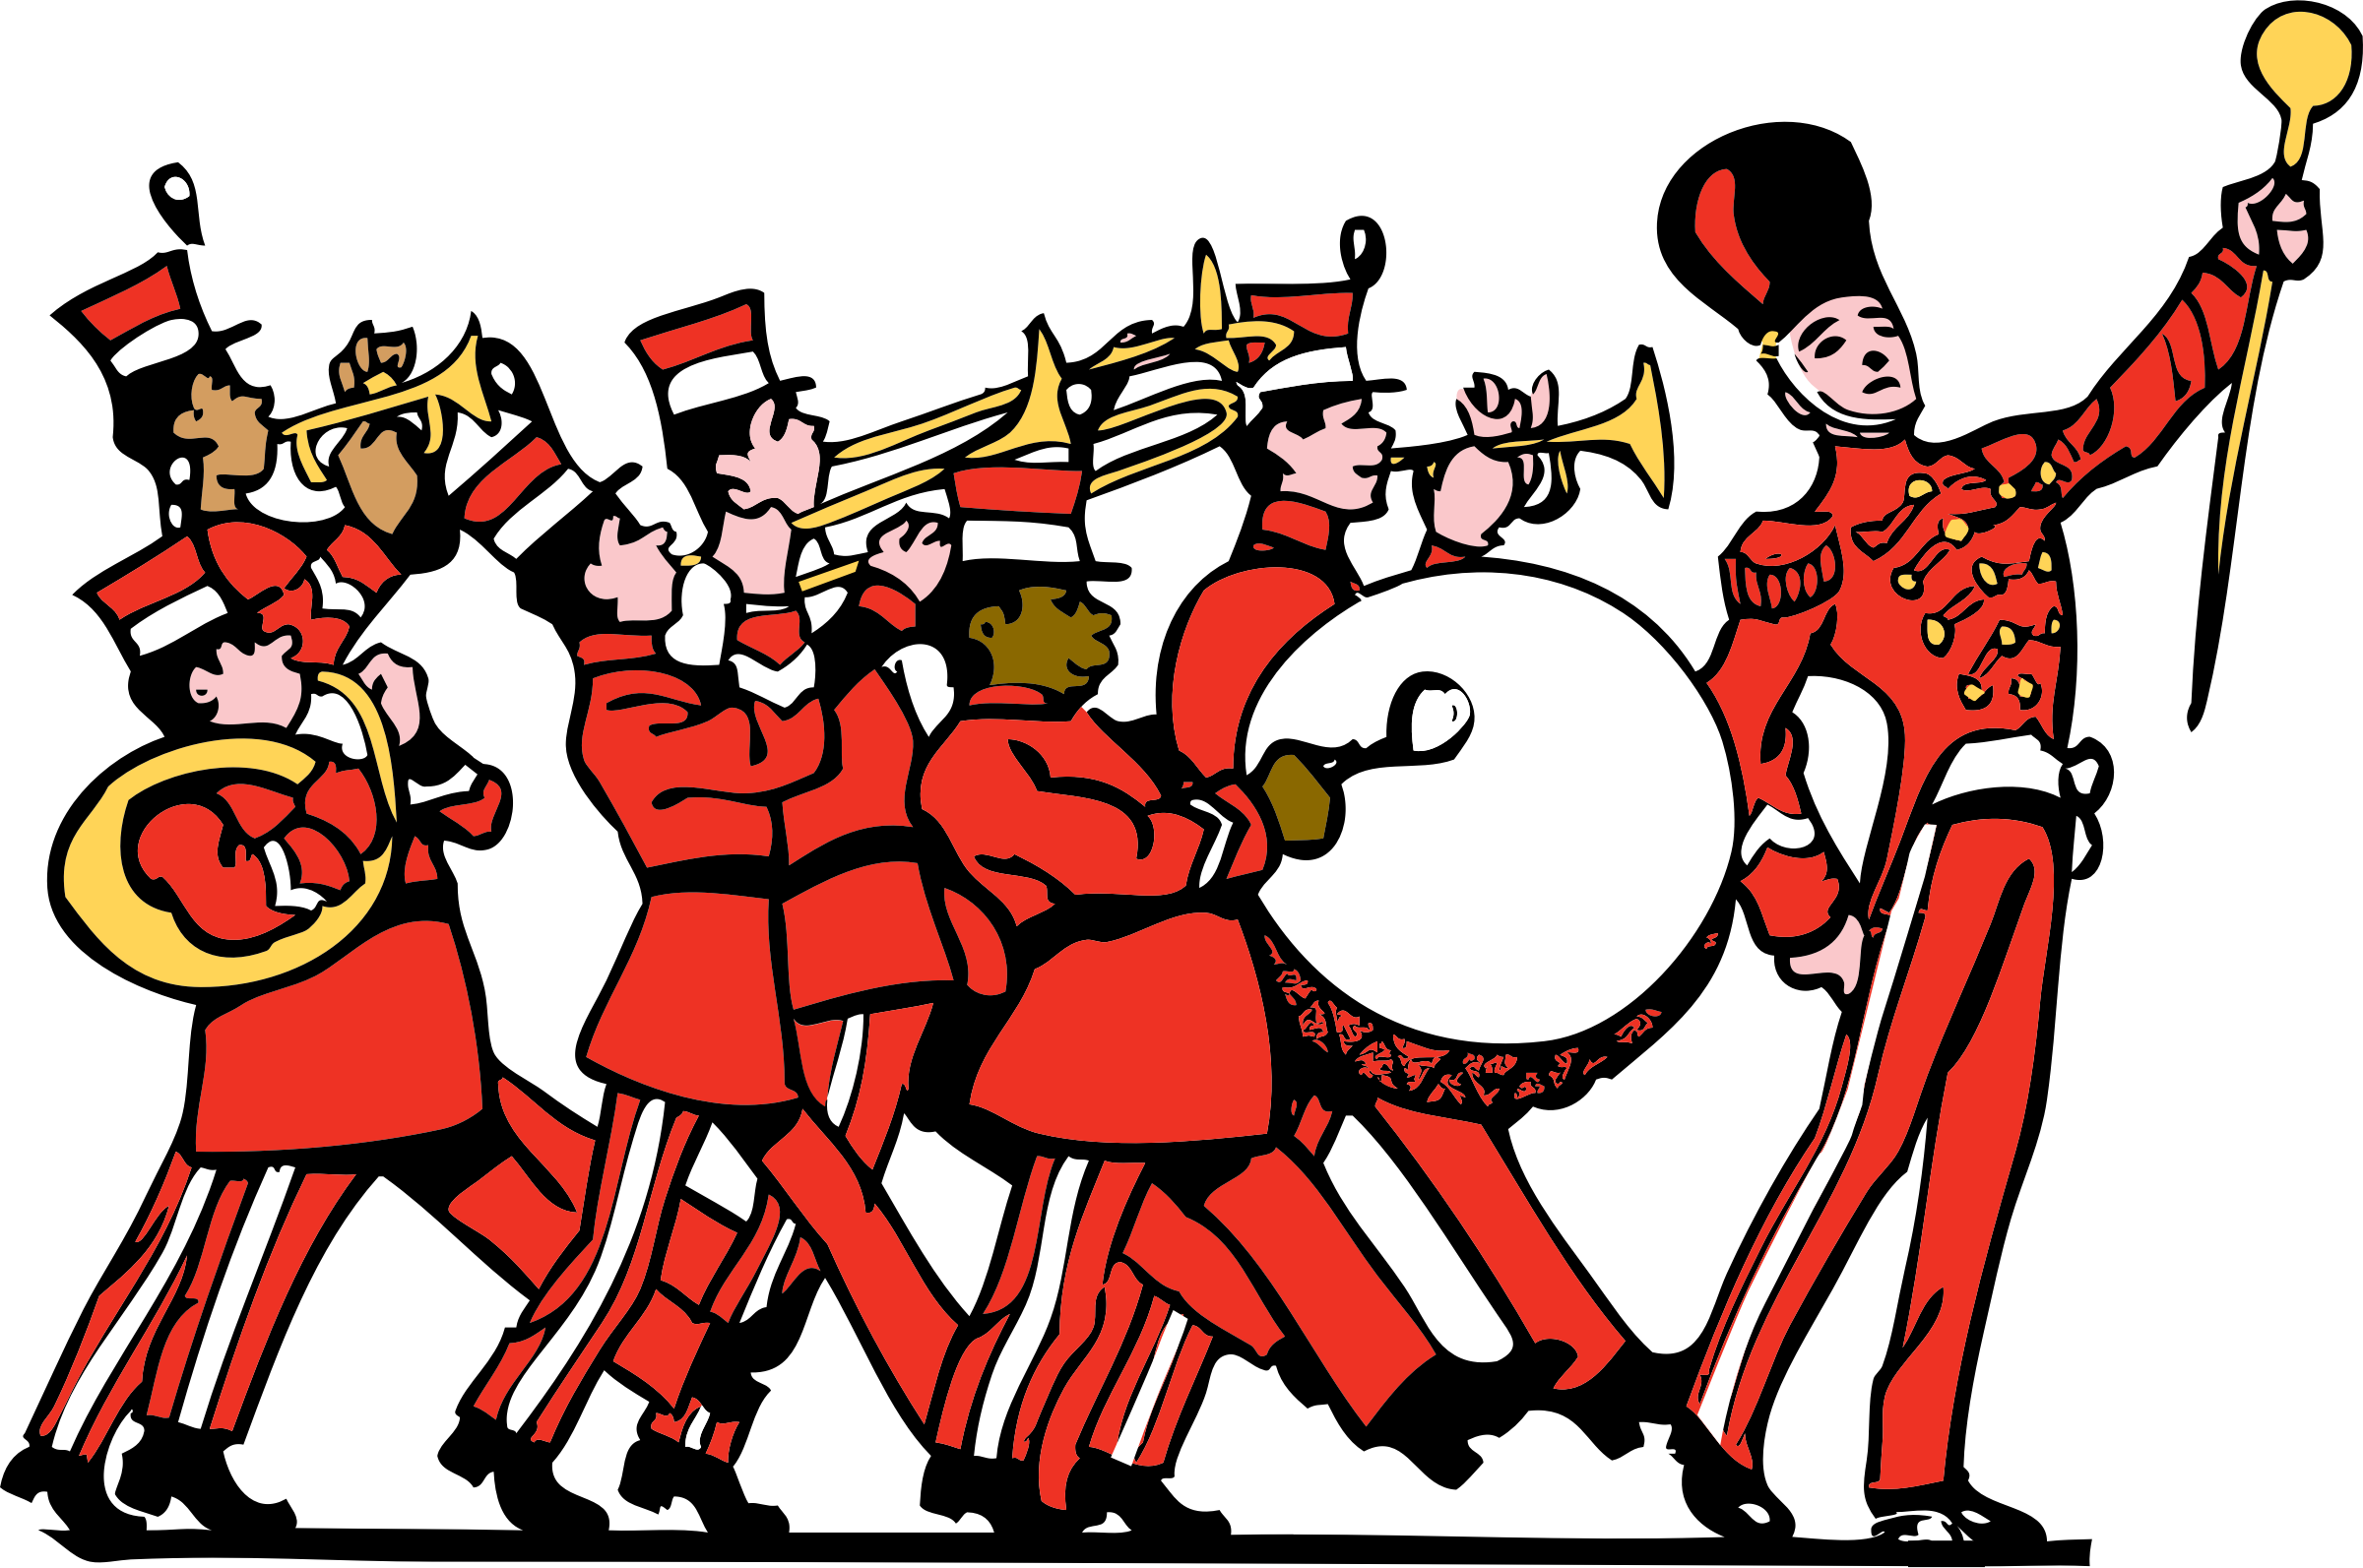 Cartoon band png. Marching icons free and